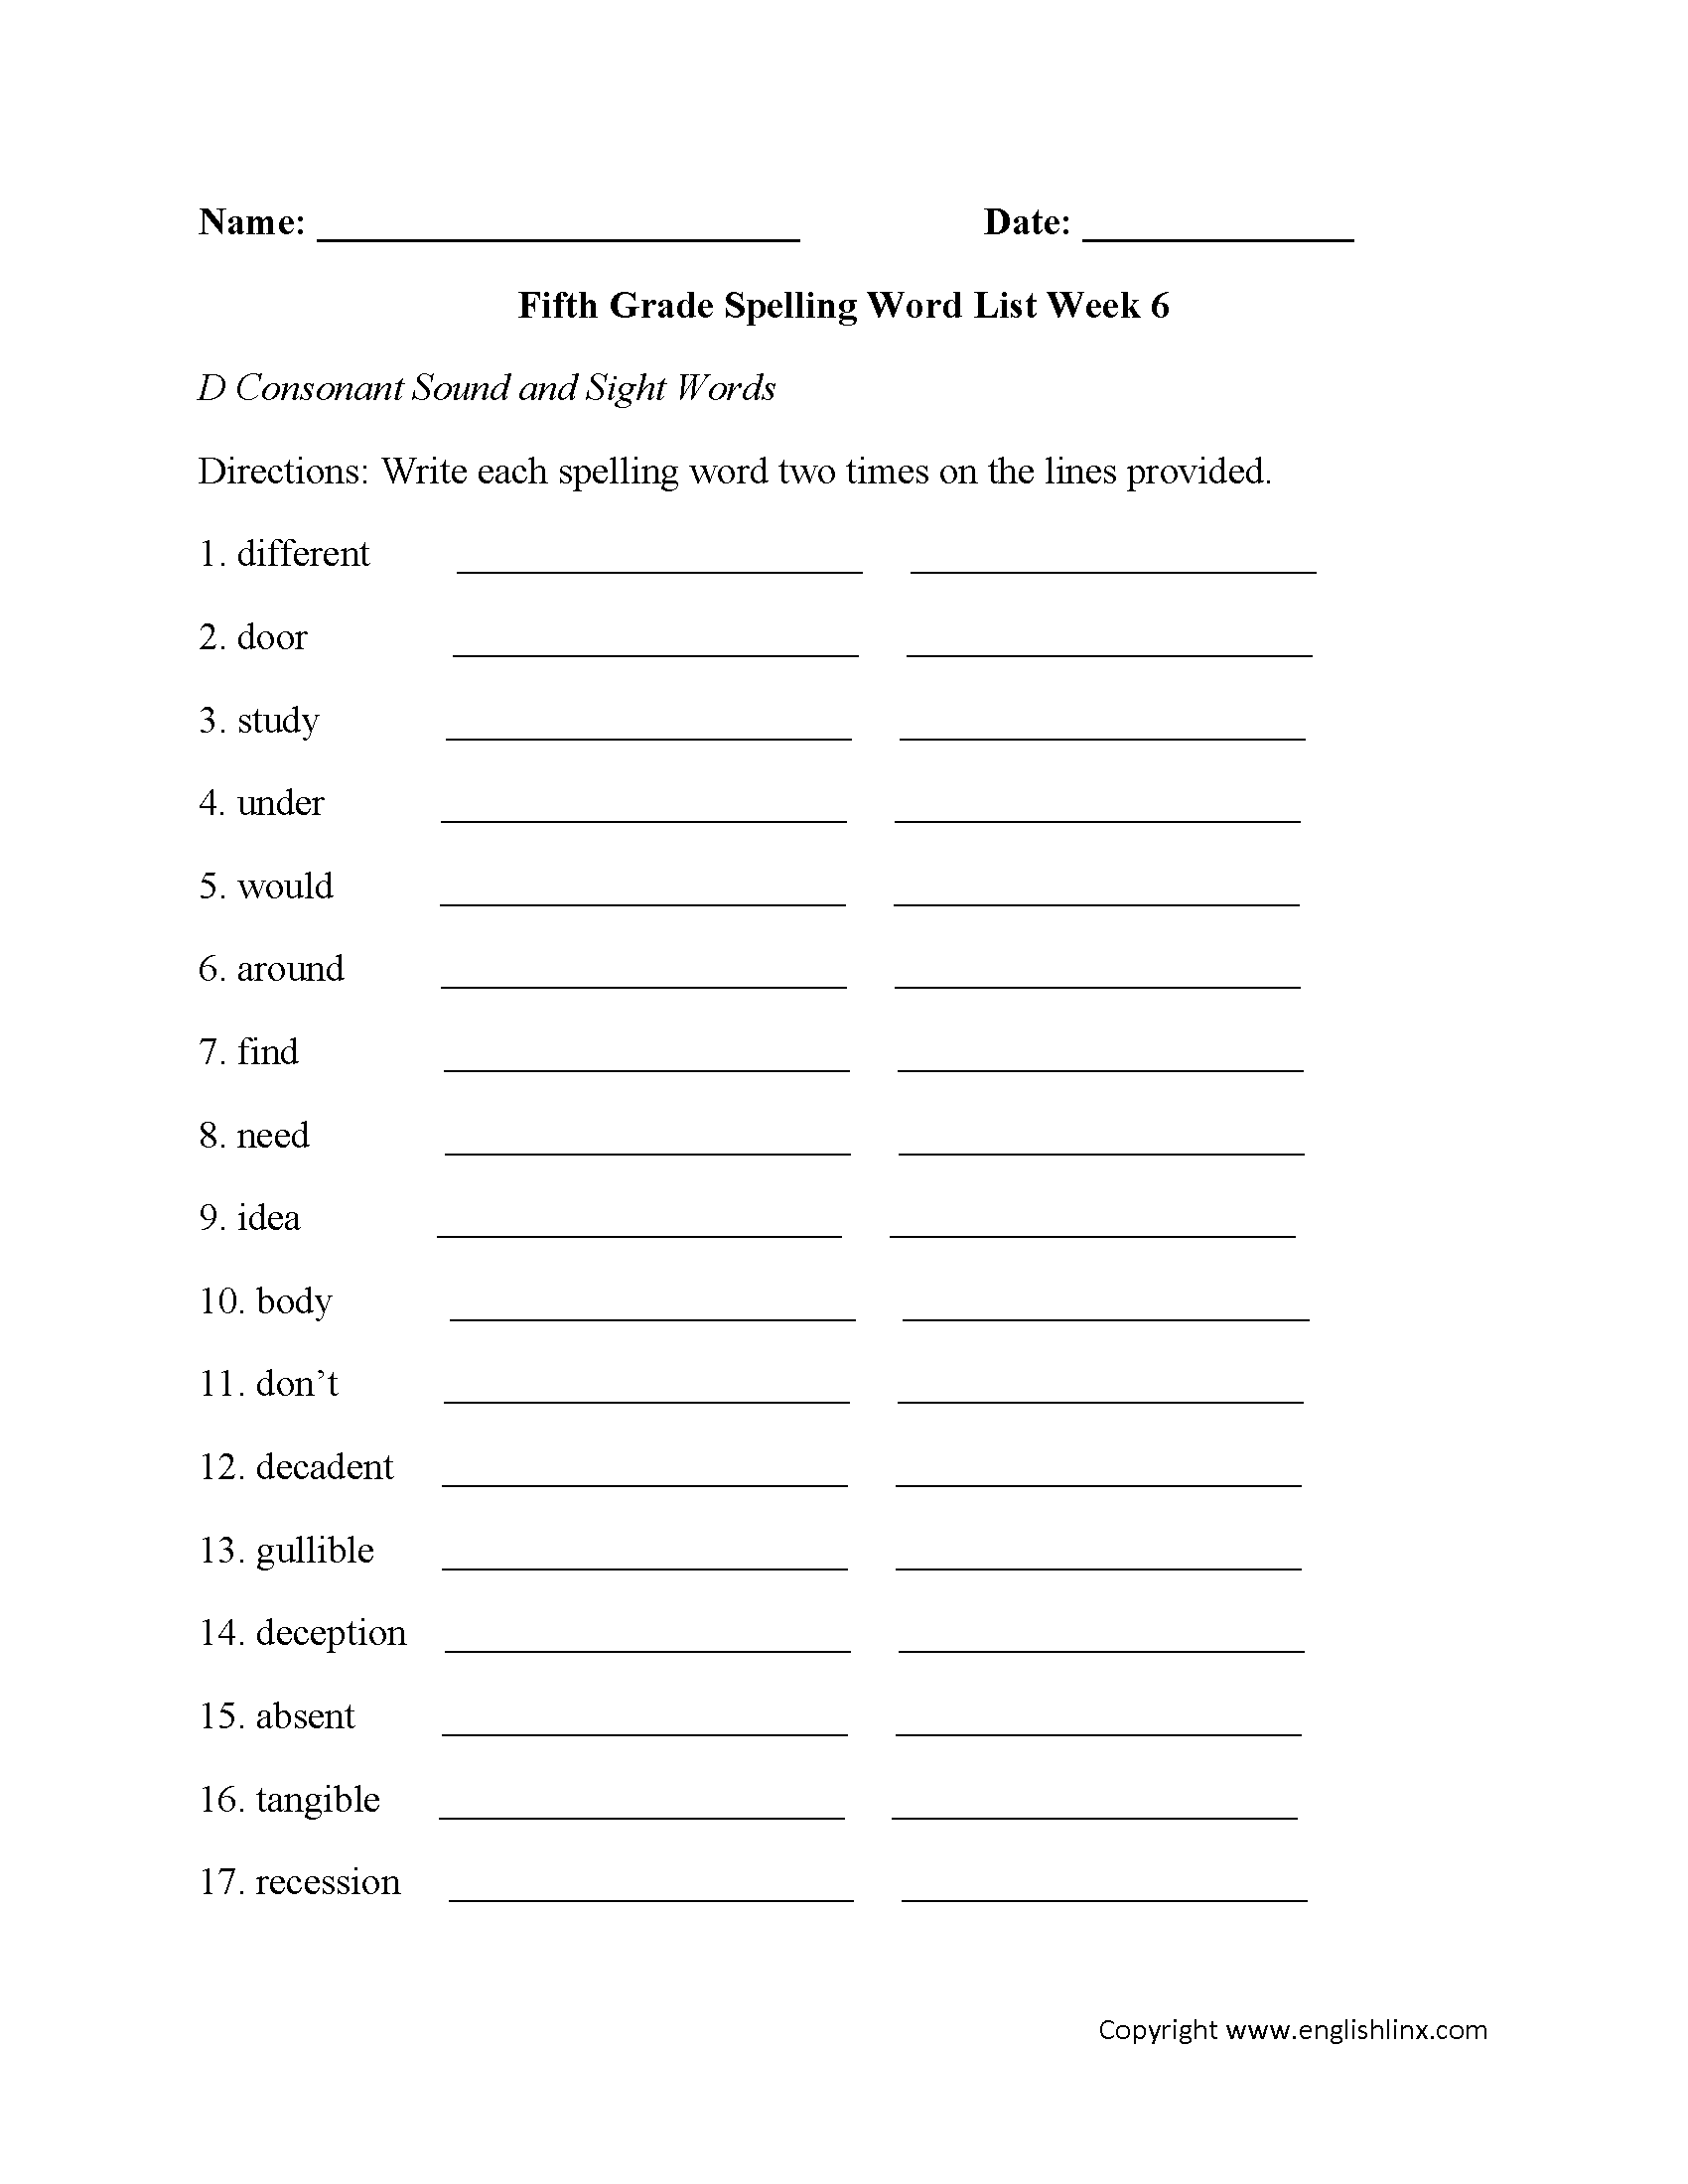 Week 6 D Consonant And Sight Words Fifth Grade Spelling Worksheets